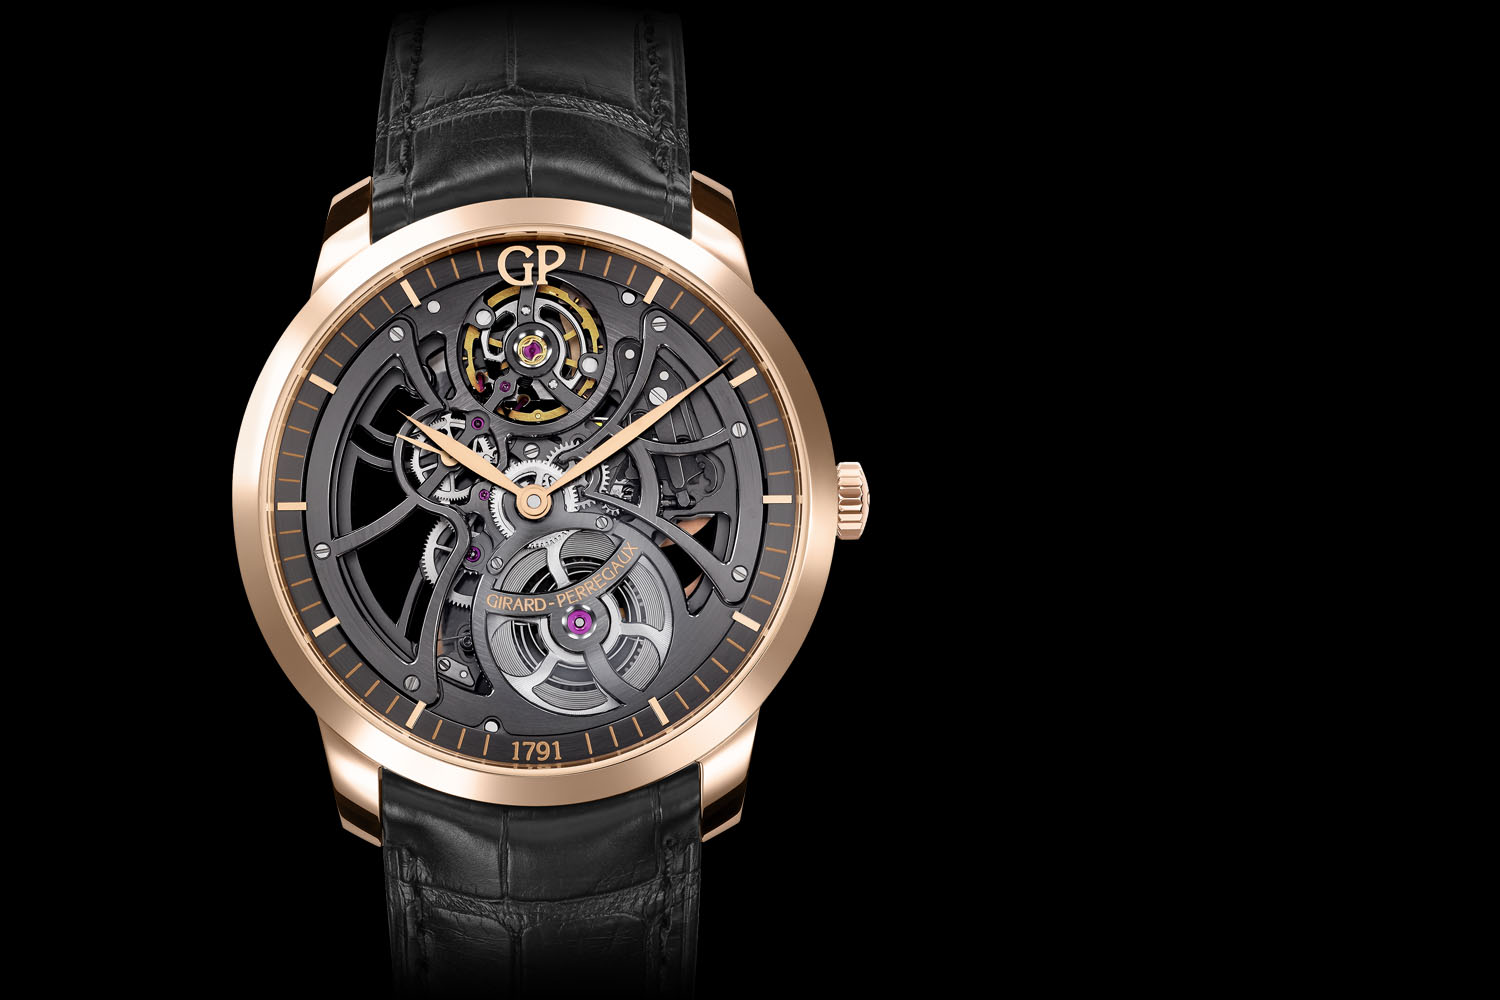 Pre baselworld 2016 introducing the girard perregaux 1966 skeleton monochrome watches for Girard perregaux